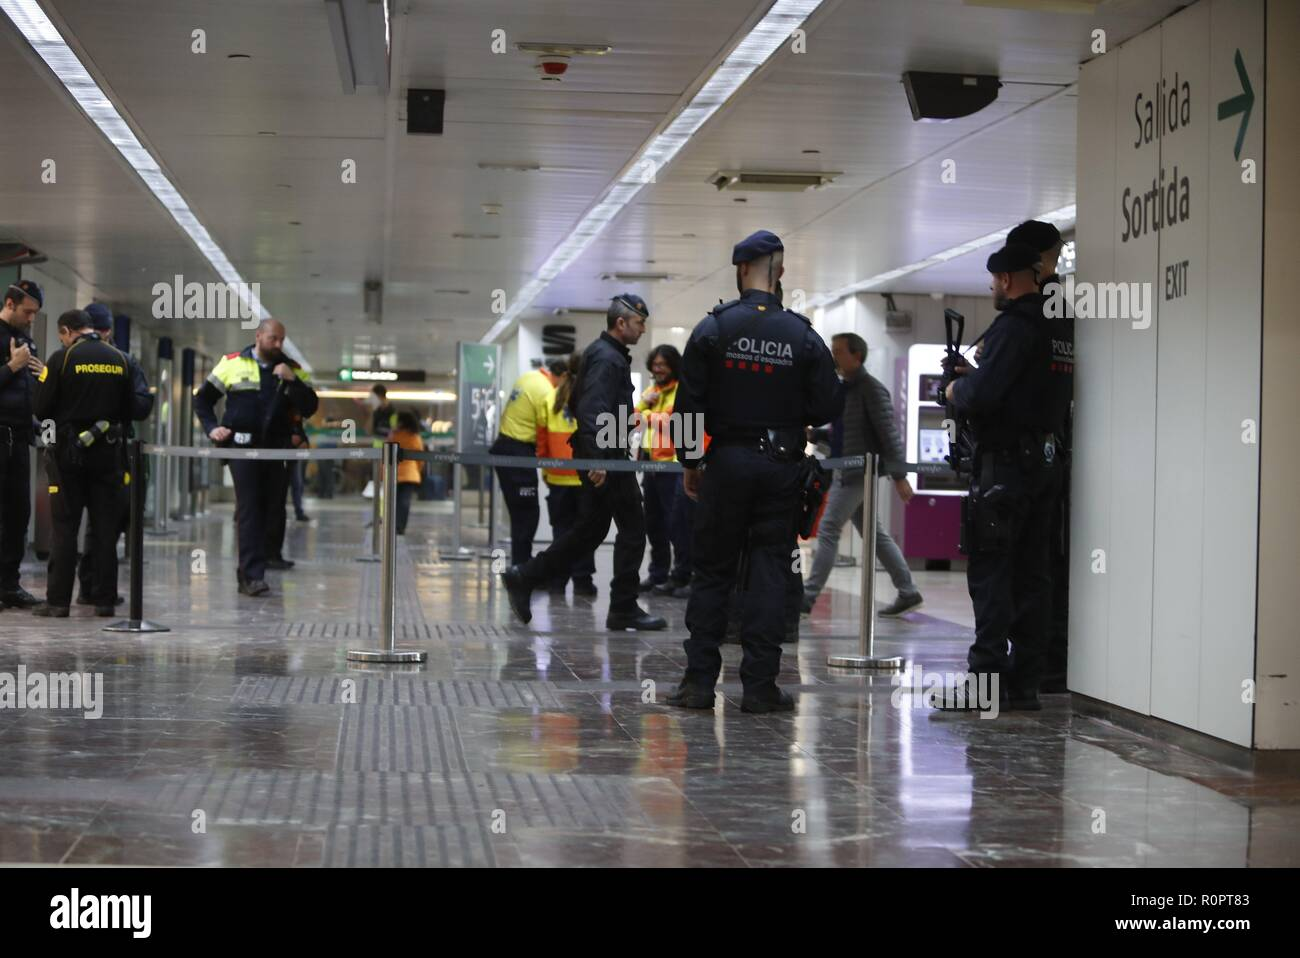 Catalan regional policemen or Mossos d'Esquadra keep watch inside the AVE high speed train station of Sants in Barcelona after two trains had to be evacuated due to a suspicious suitcase, in Barcelona, northeastern Spain, 07 November 2018. National Police has confirmed that the explosive alert issued in the train stations of Sants in Barcelona and Atocha in Madrid is a false alarm. The alert was activated after suspicions about a woman carrying a suitcase with a suspicious object similar to an explosive device inside, get on board an AVE train in Sants heading for Atocha. The train was stopped Stock Photo